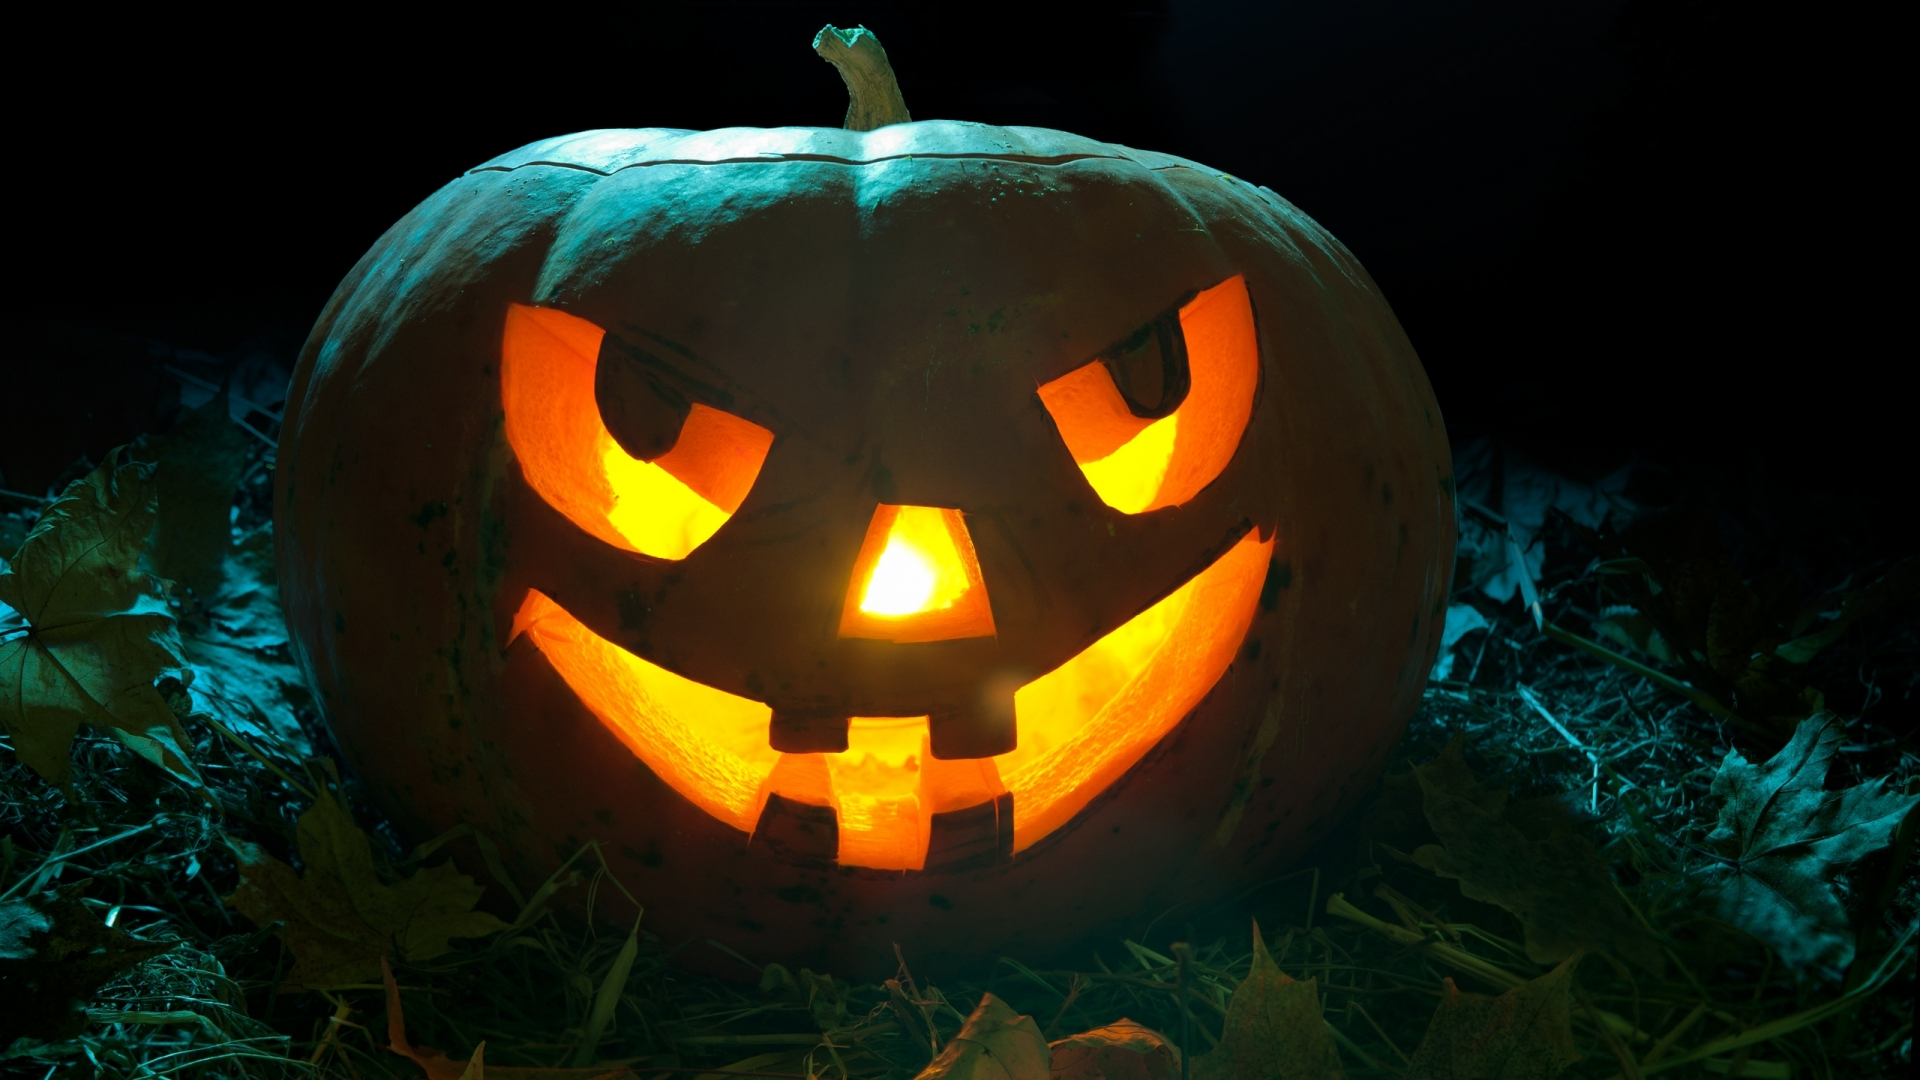 Scary Pumpkin   High Definition Wallpapers   HD wallpapers 1920x1080